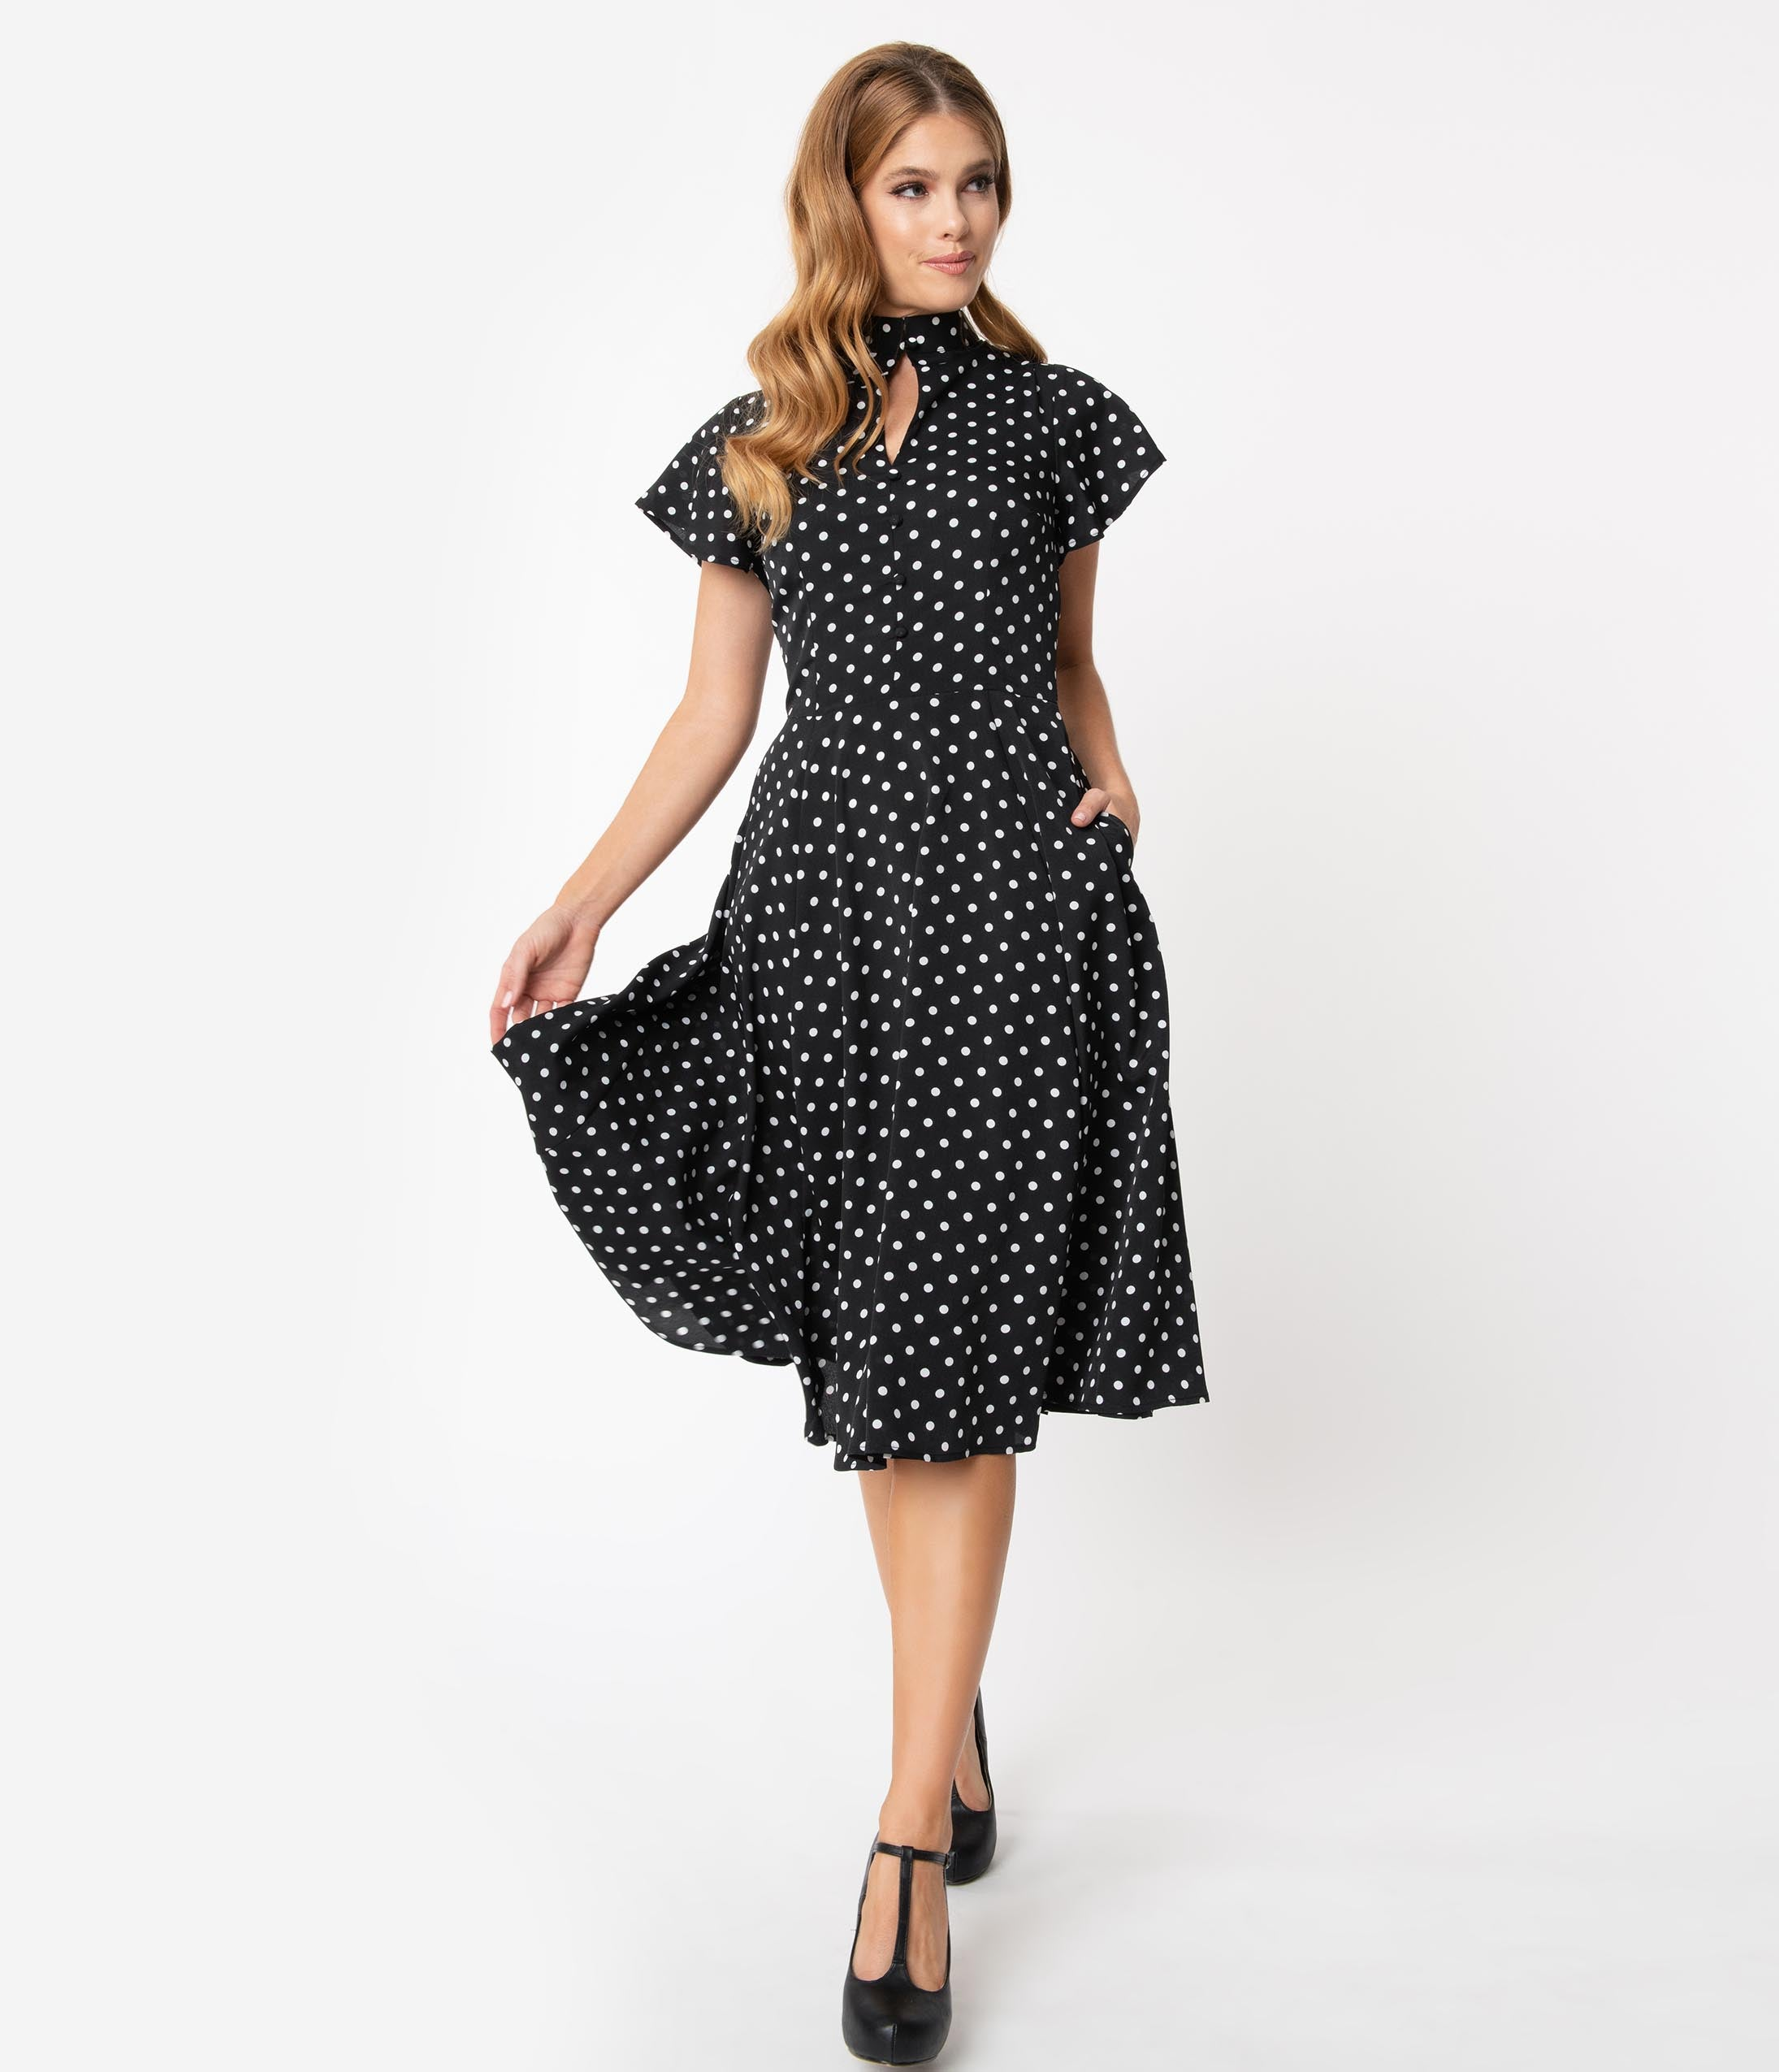 1950s Dresses, 50s Dresses | 1950s Style Dresses Unique Vintage 1950S Black  White Polka Dot Baltimore Swing Dress $98.00 AT vintagedancer.com